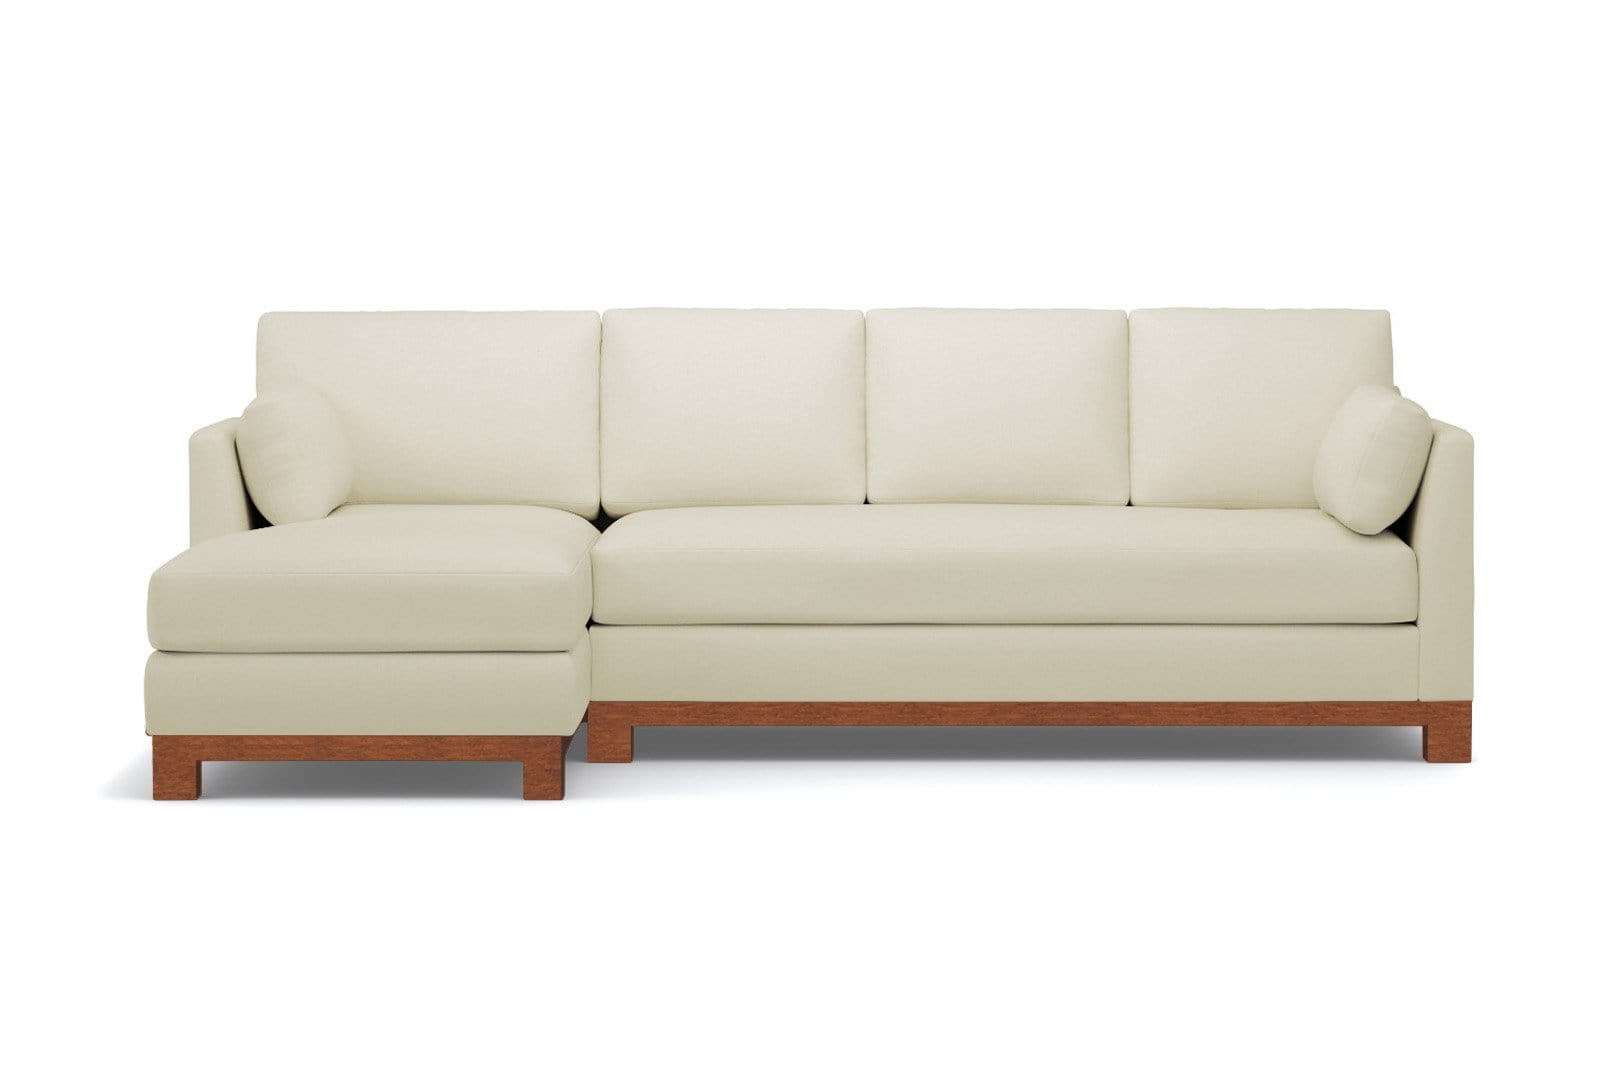 Avalon 2pc Sleeper Sectional - Beige -  Pull Out Couch Bed Made in the USA - Sold by Apt2B